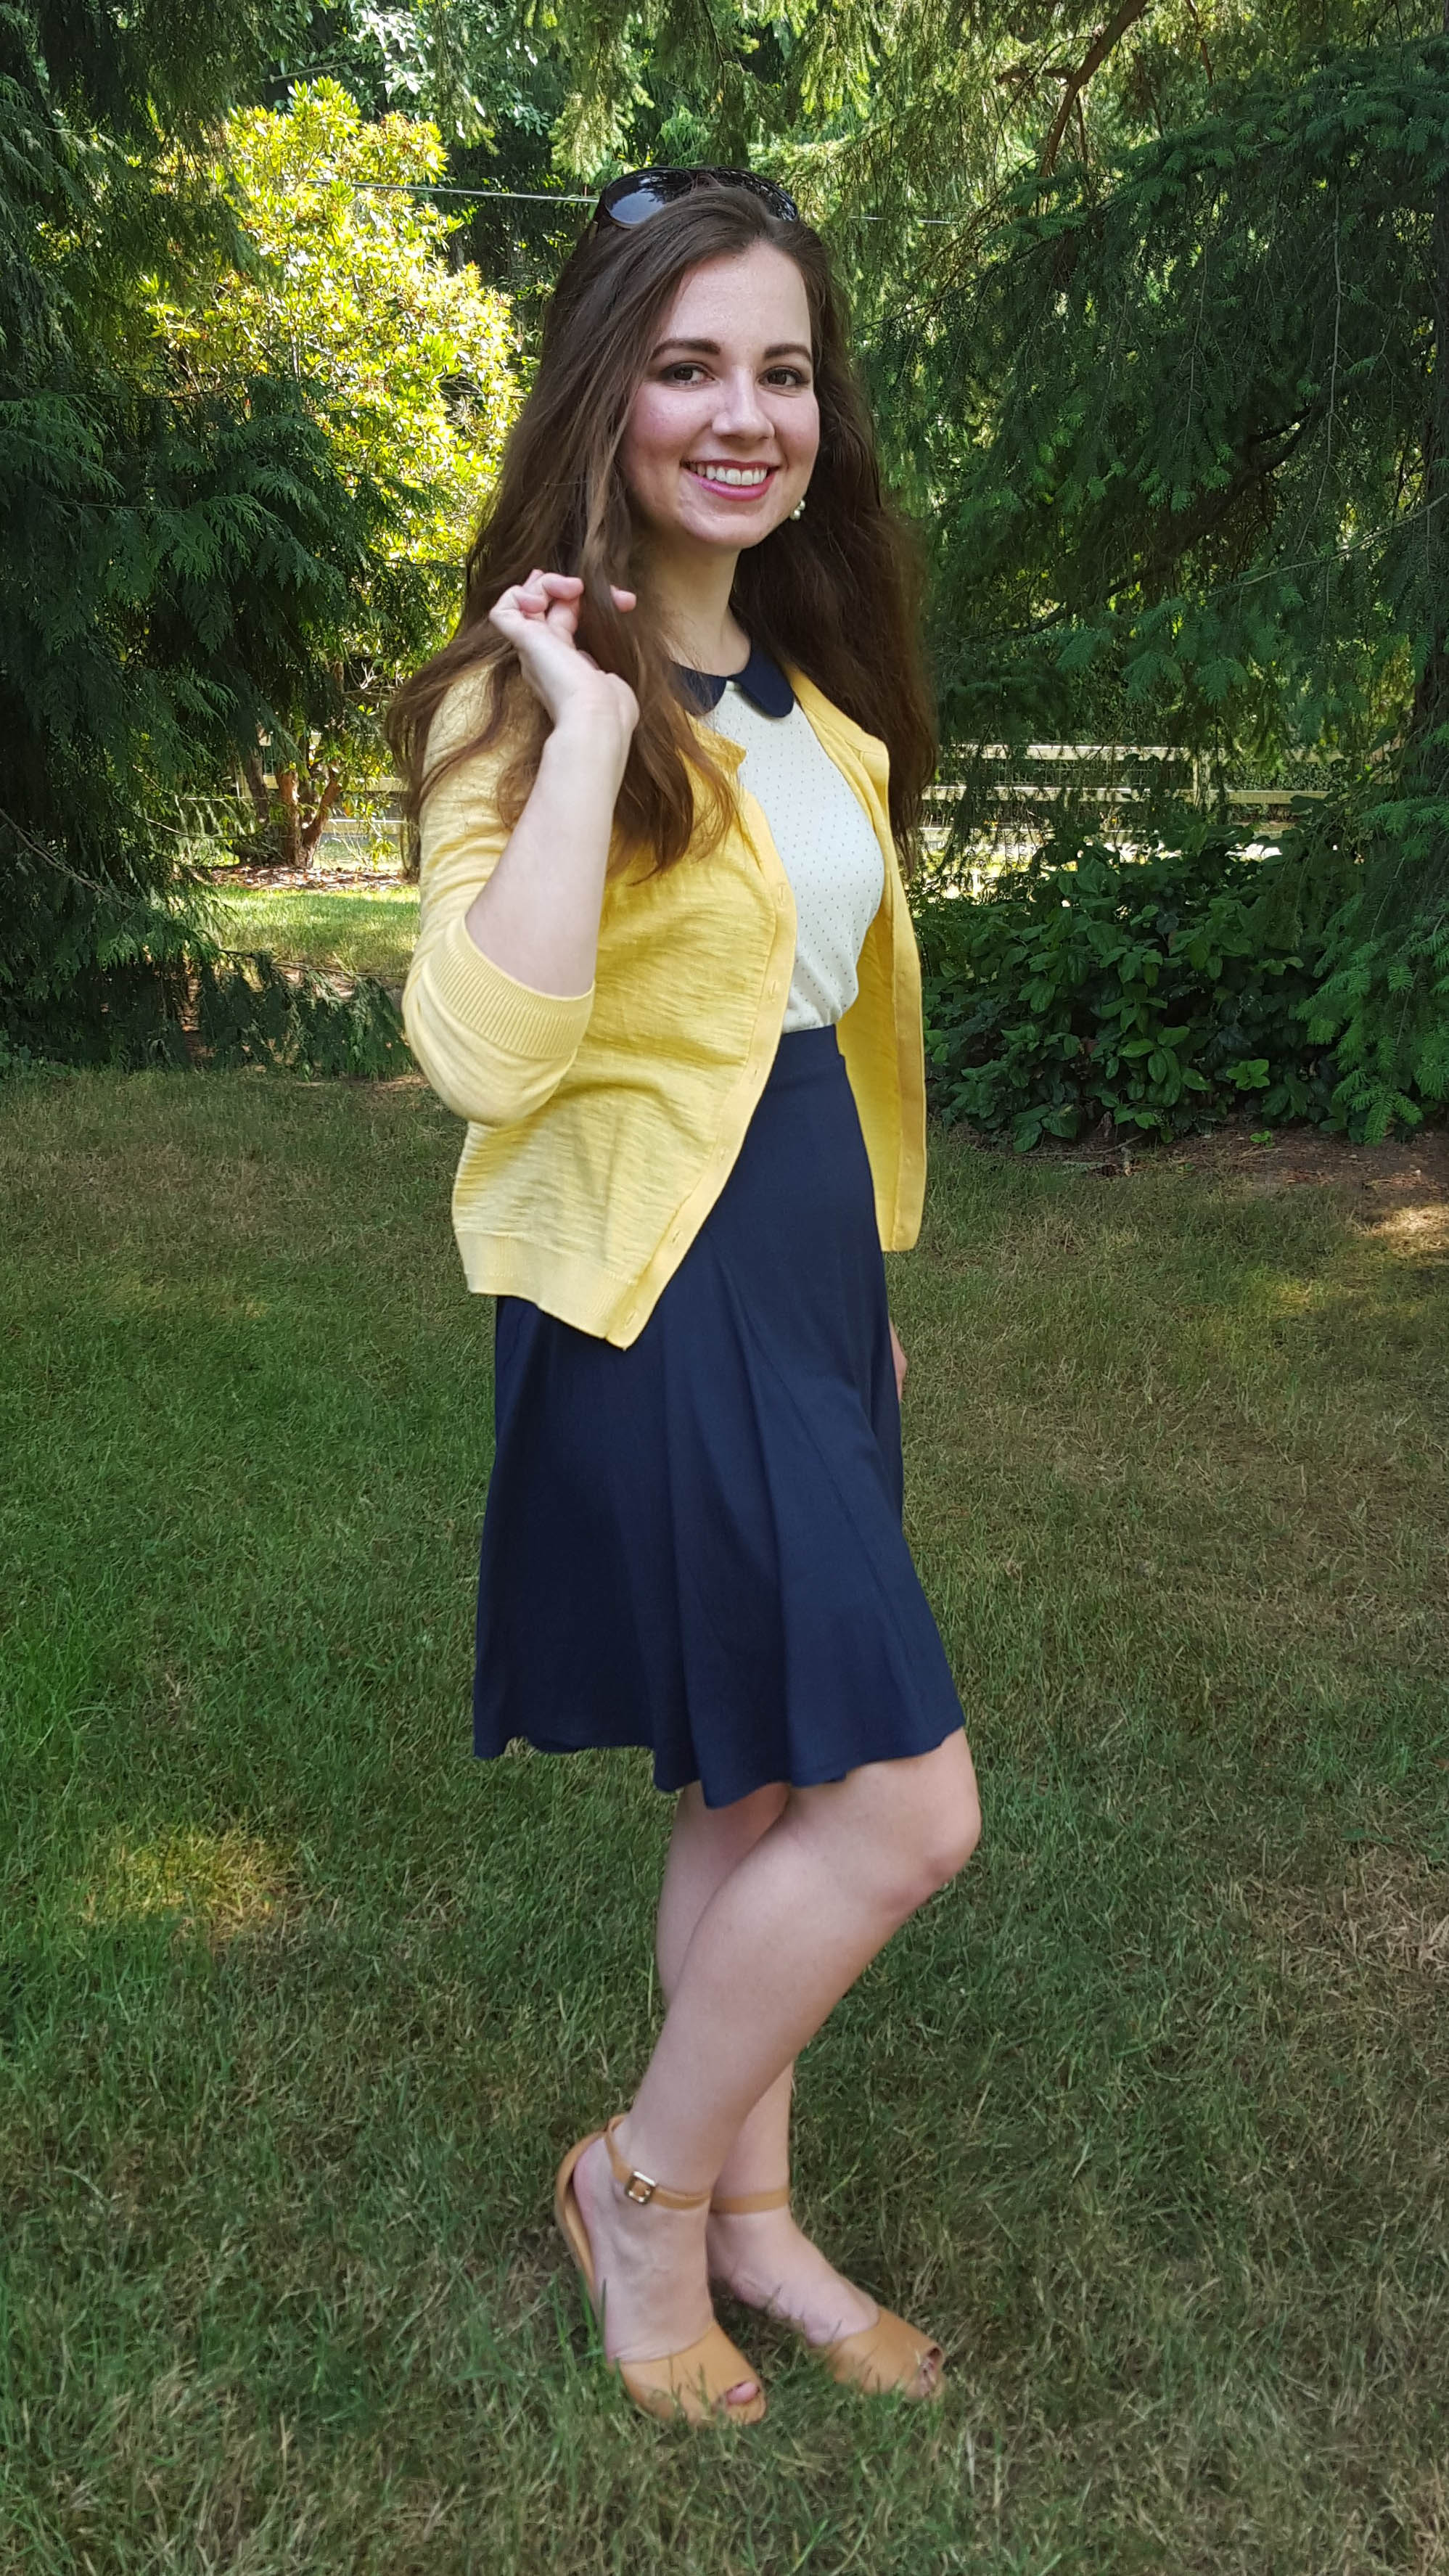 Northwest Pearls: Yellow, Cream, and Navy OOTD